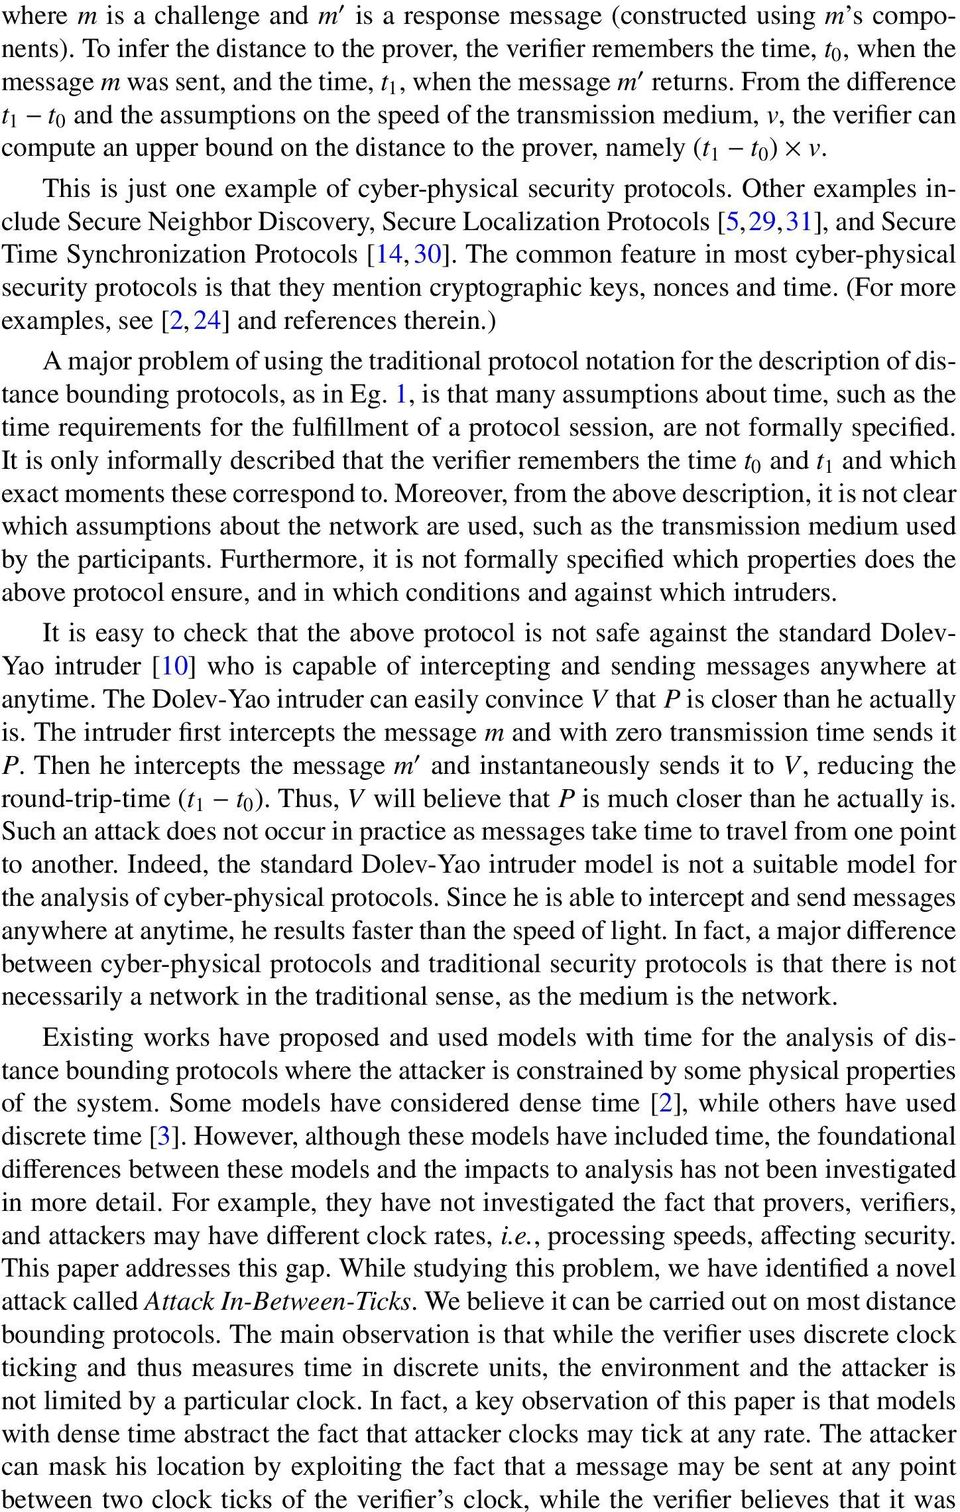 From the difference t 1 t 0 and the assumptions on the speed of the transmission medium, v, the verifier can compute an upper bound on the distance to the prover, namely (t 1 t 0 ) v.